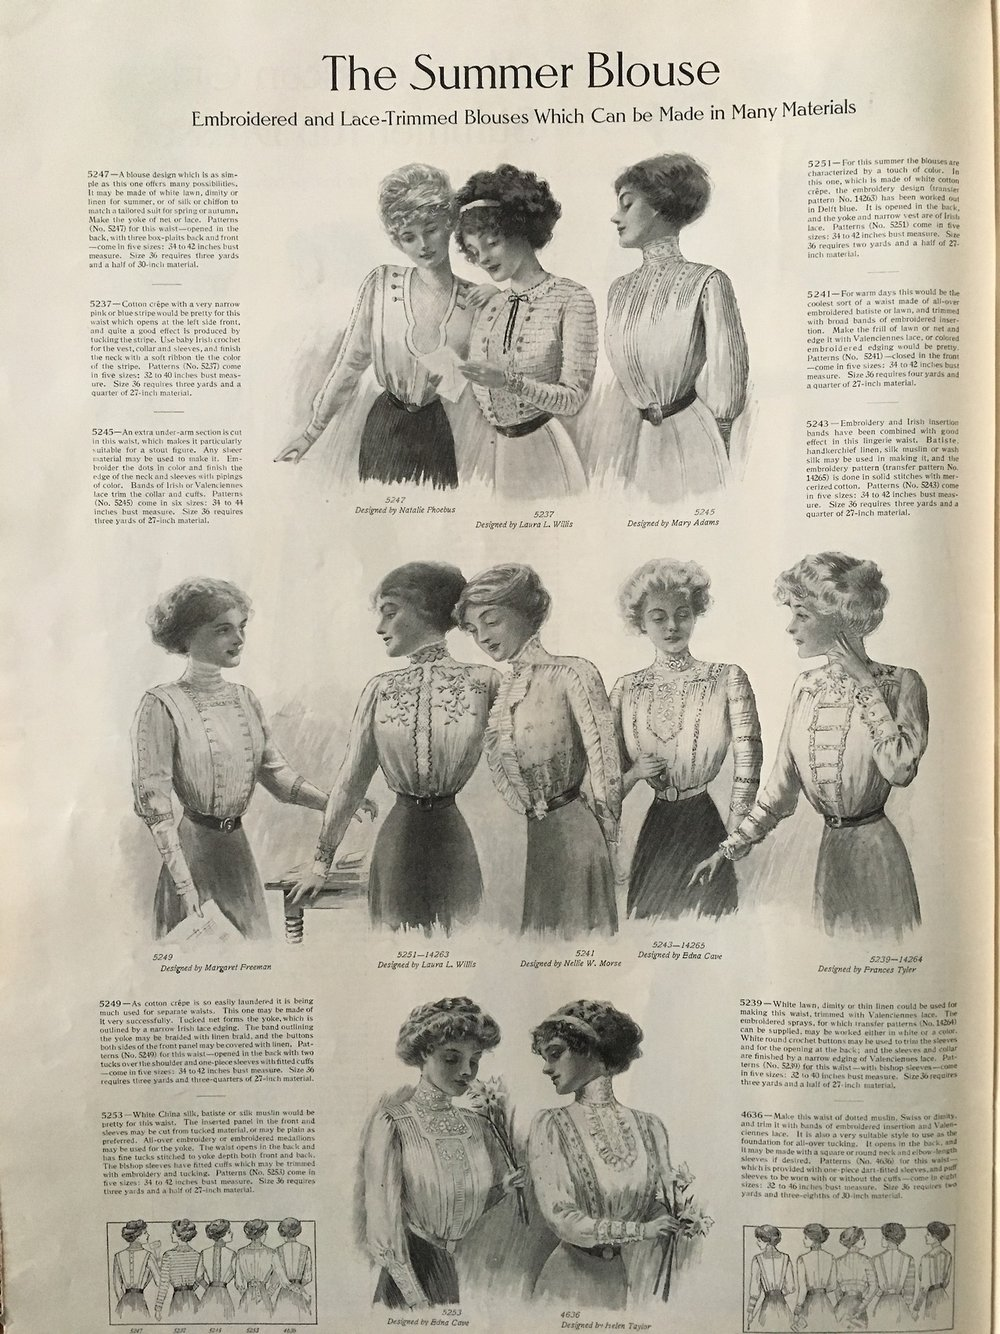 The Summer Blouse. Ladies' Home Journal. June 1910.